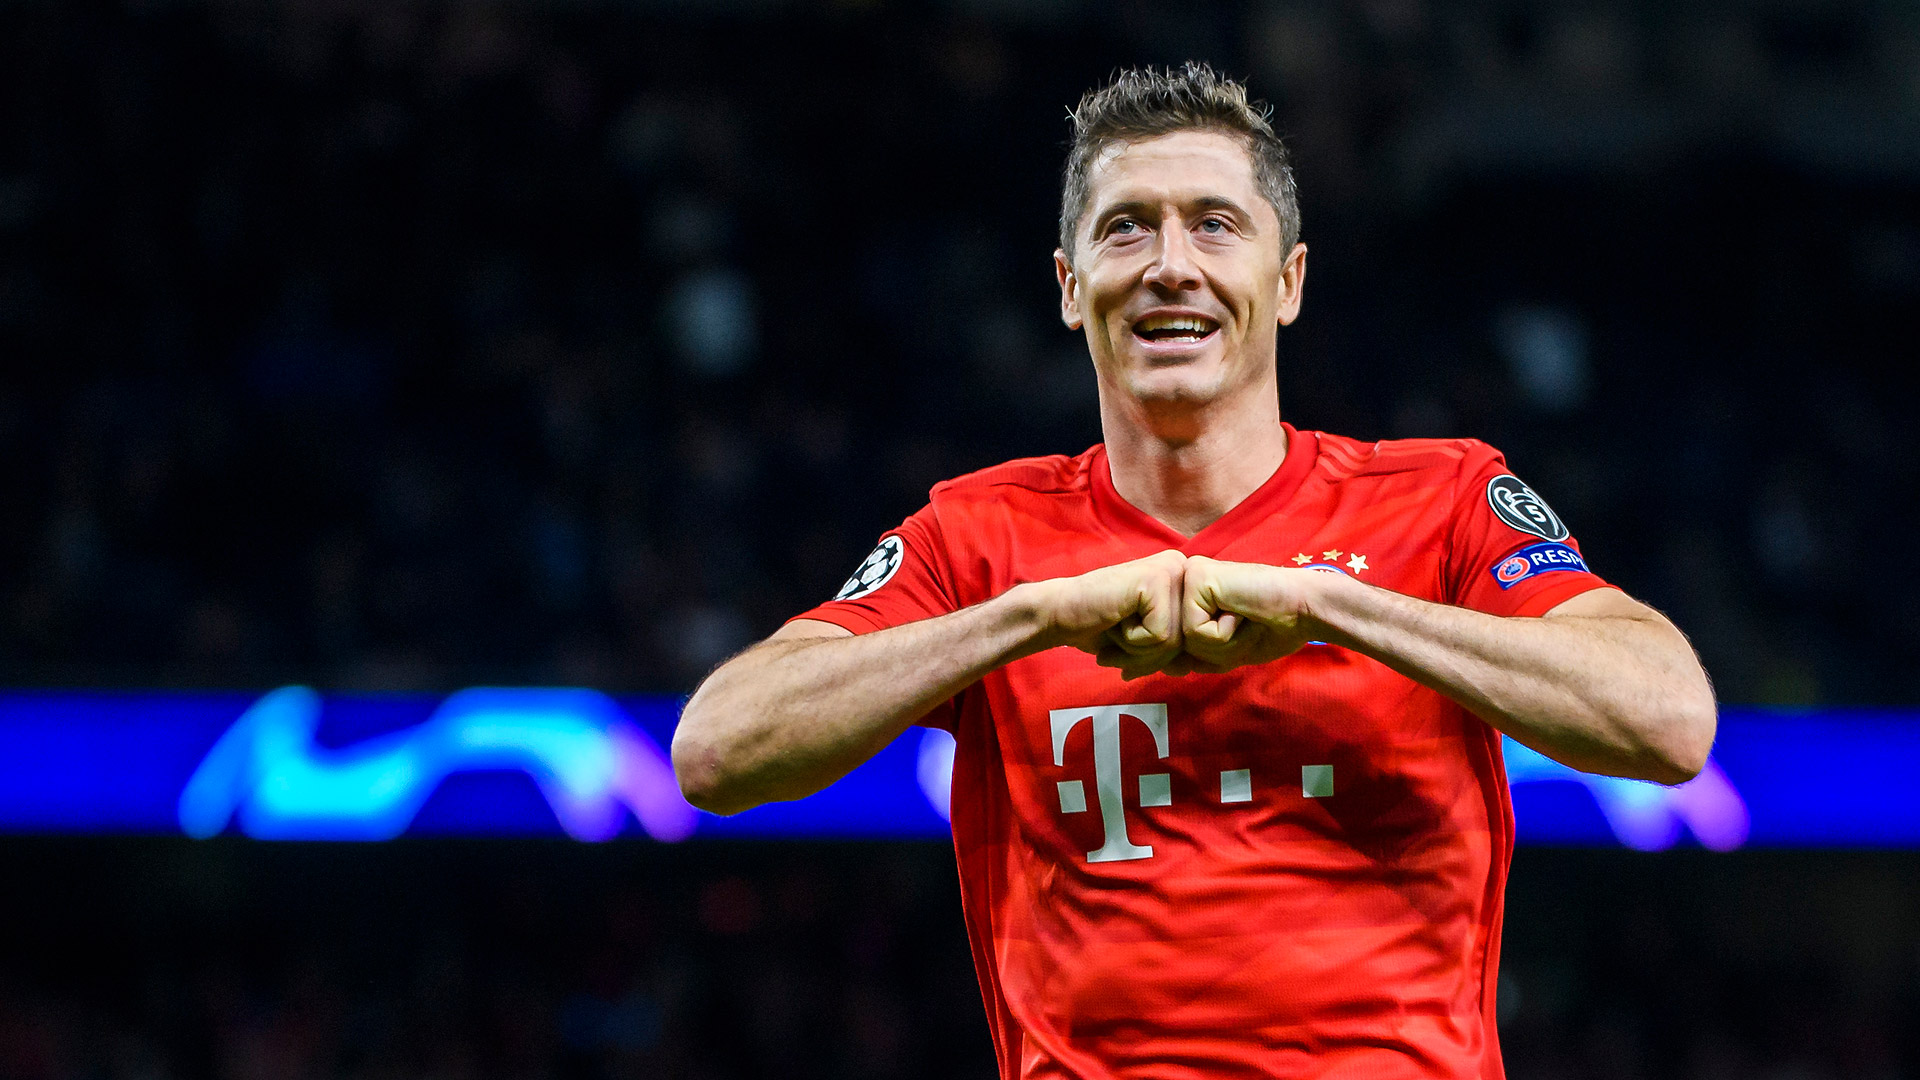 Give the 2020 Ballon d'Or to Robert Lewandowski!